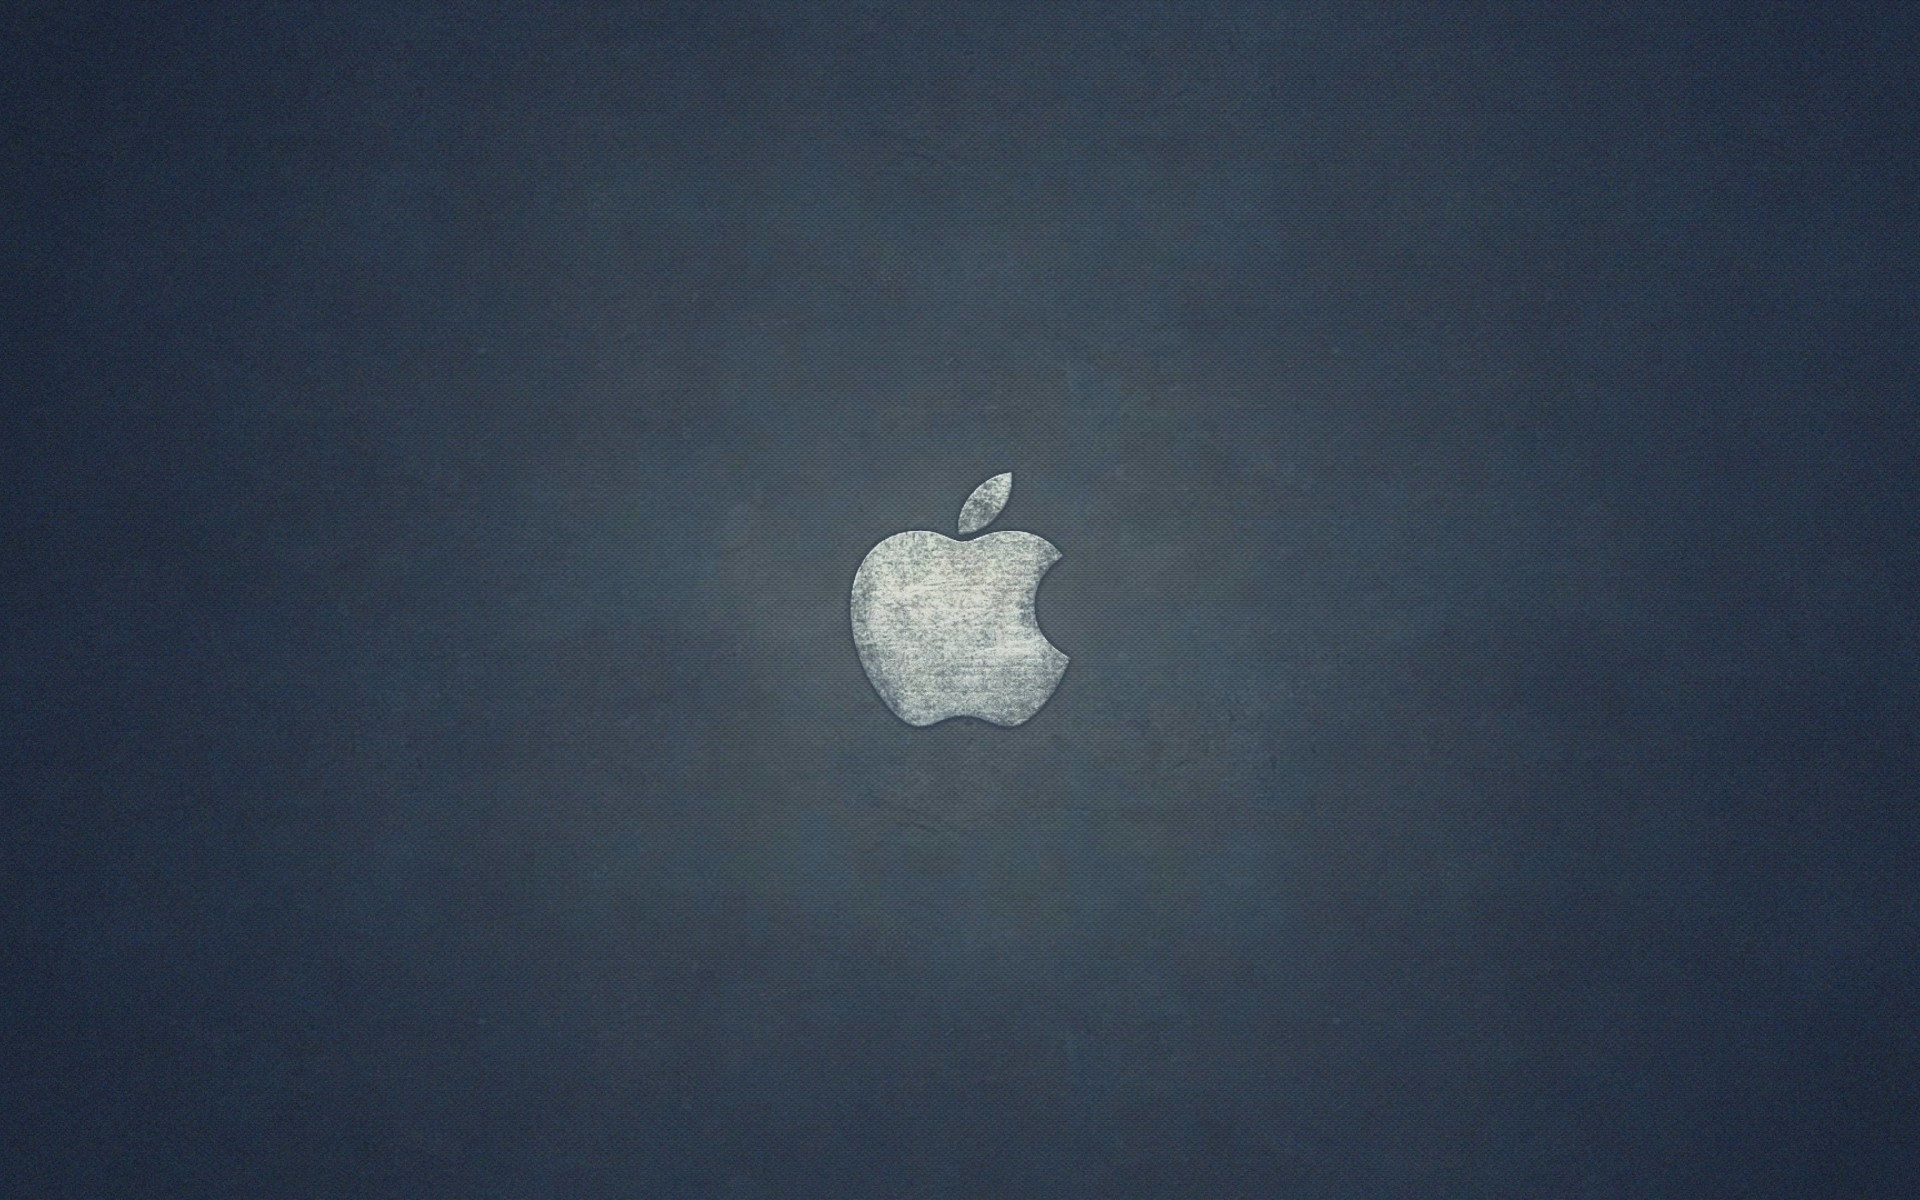 Grunge Apple Logo Wallpaper for Desktop 1920x1200